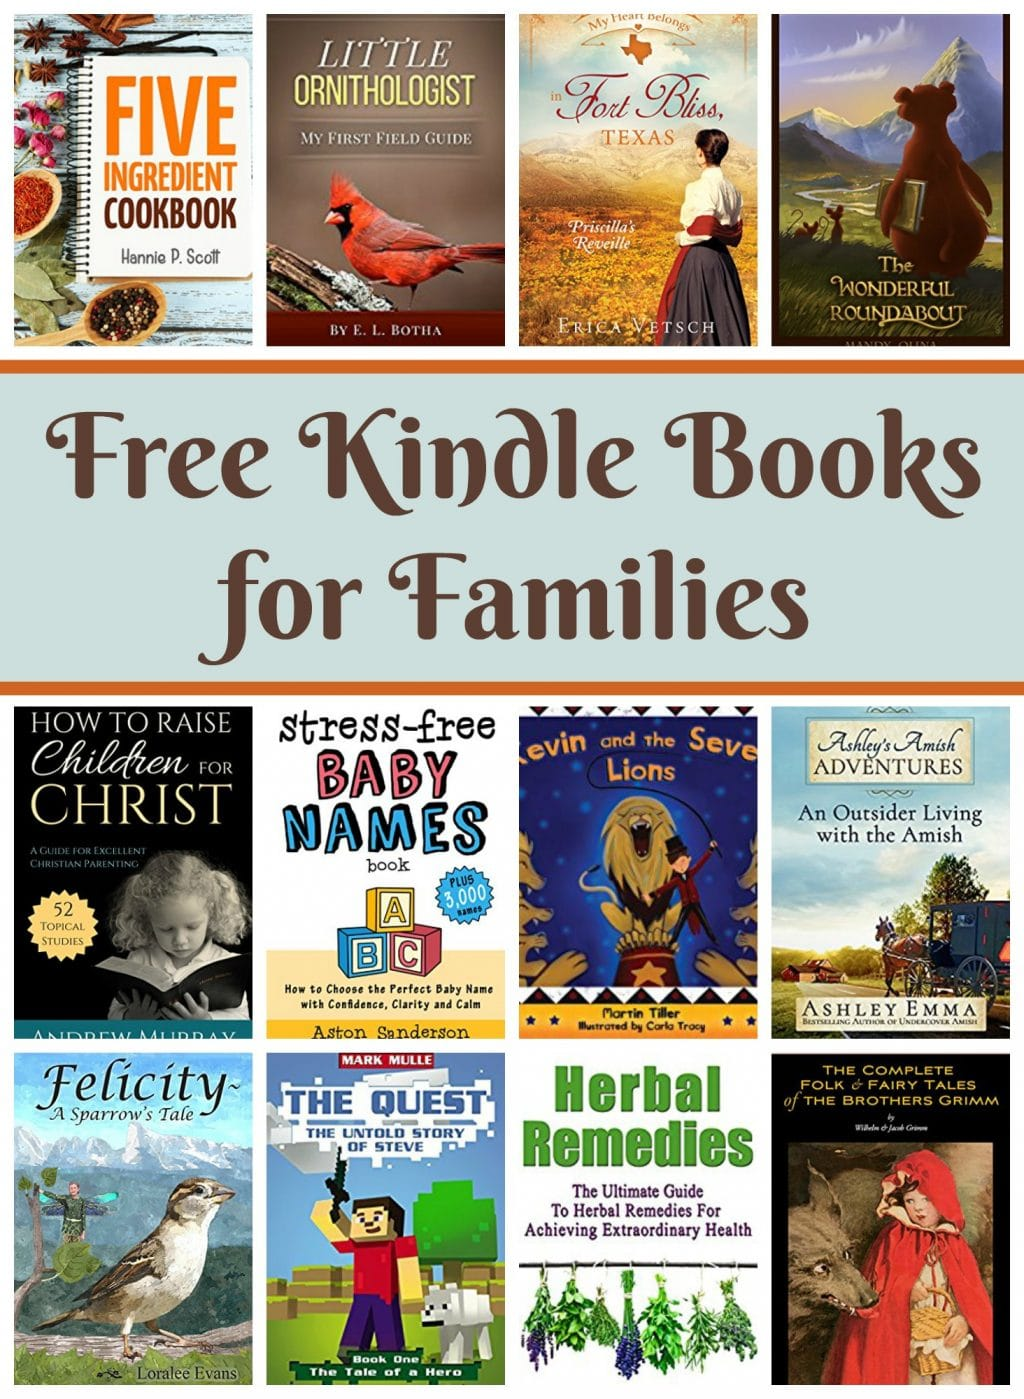 Free Kindle Books for Families